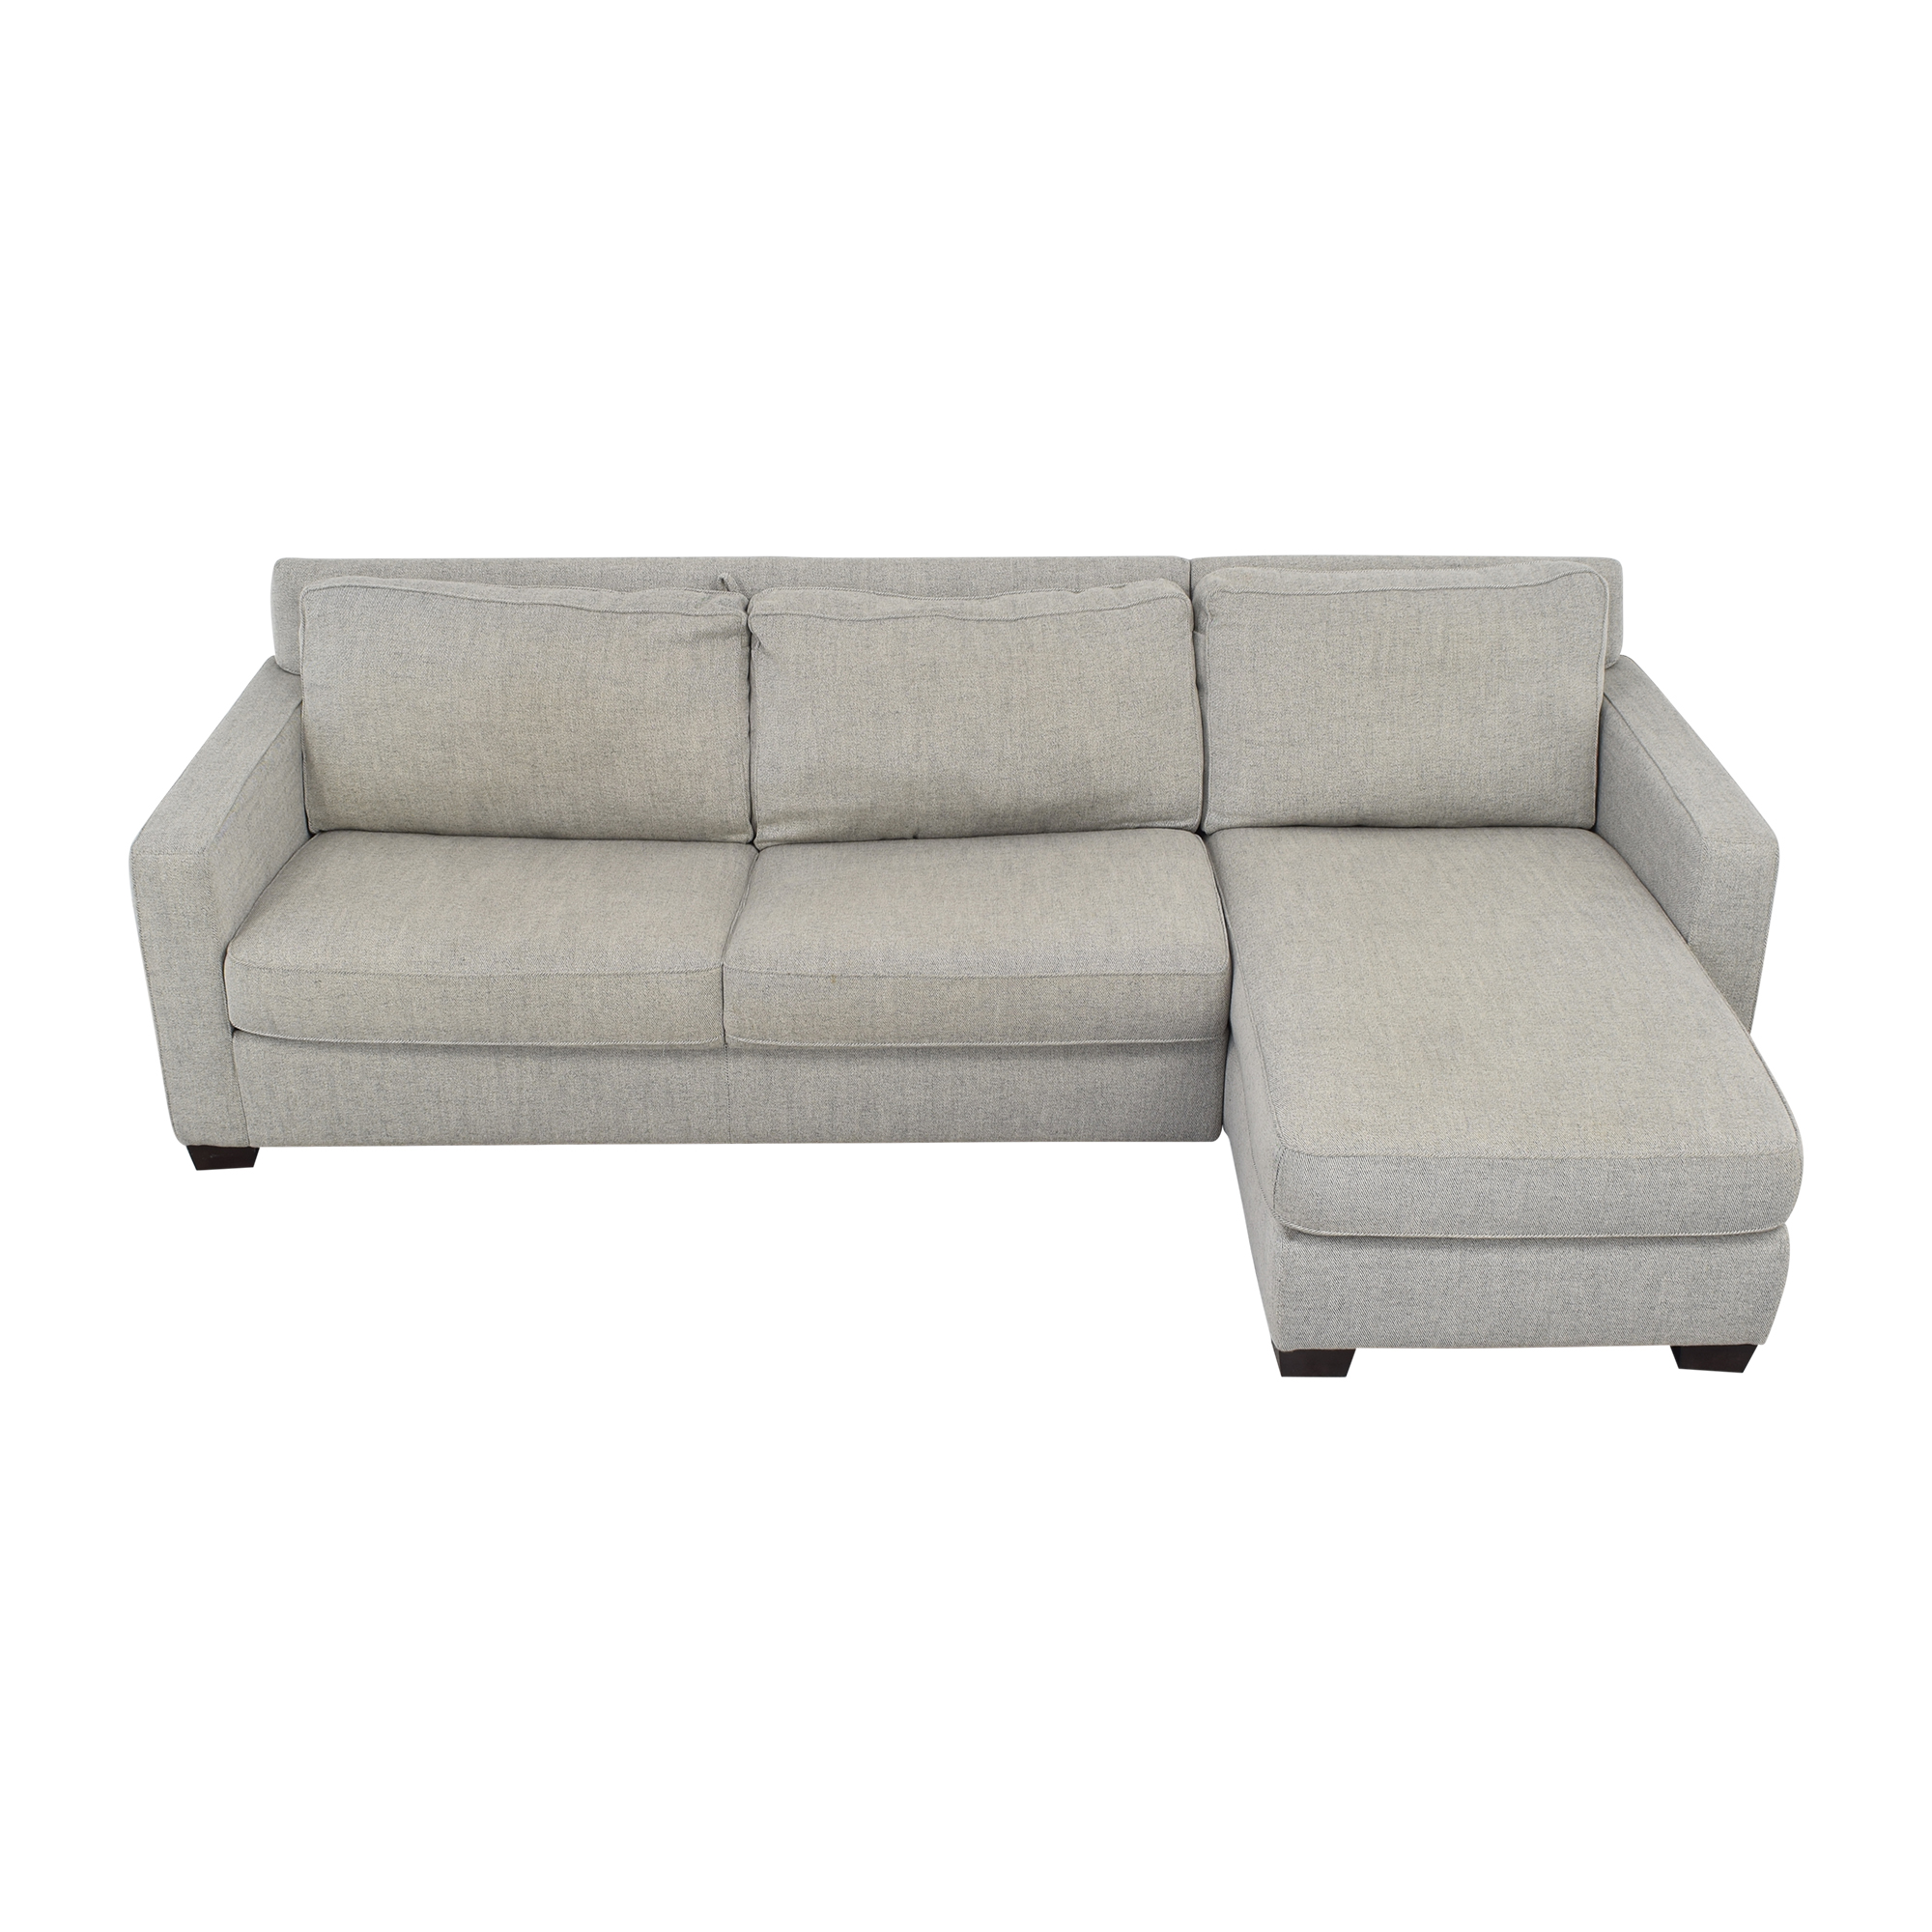 West Elm West Elm Henry Sleeper Sectional with Storage Chaise on sale